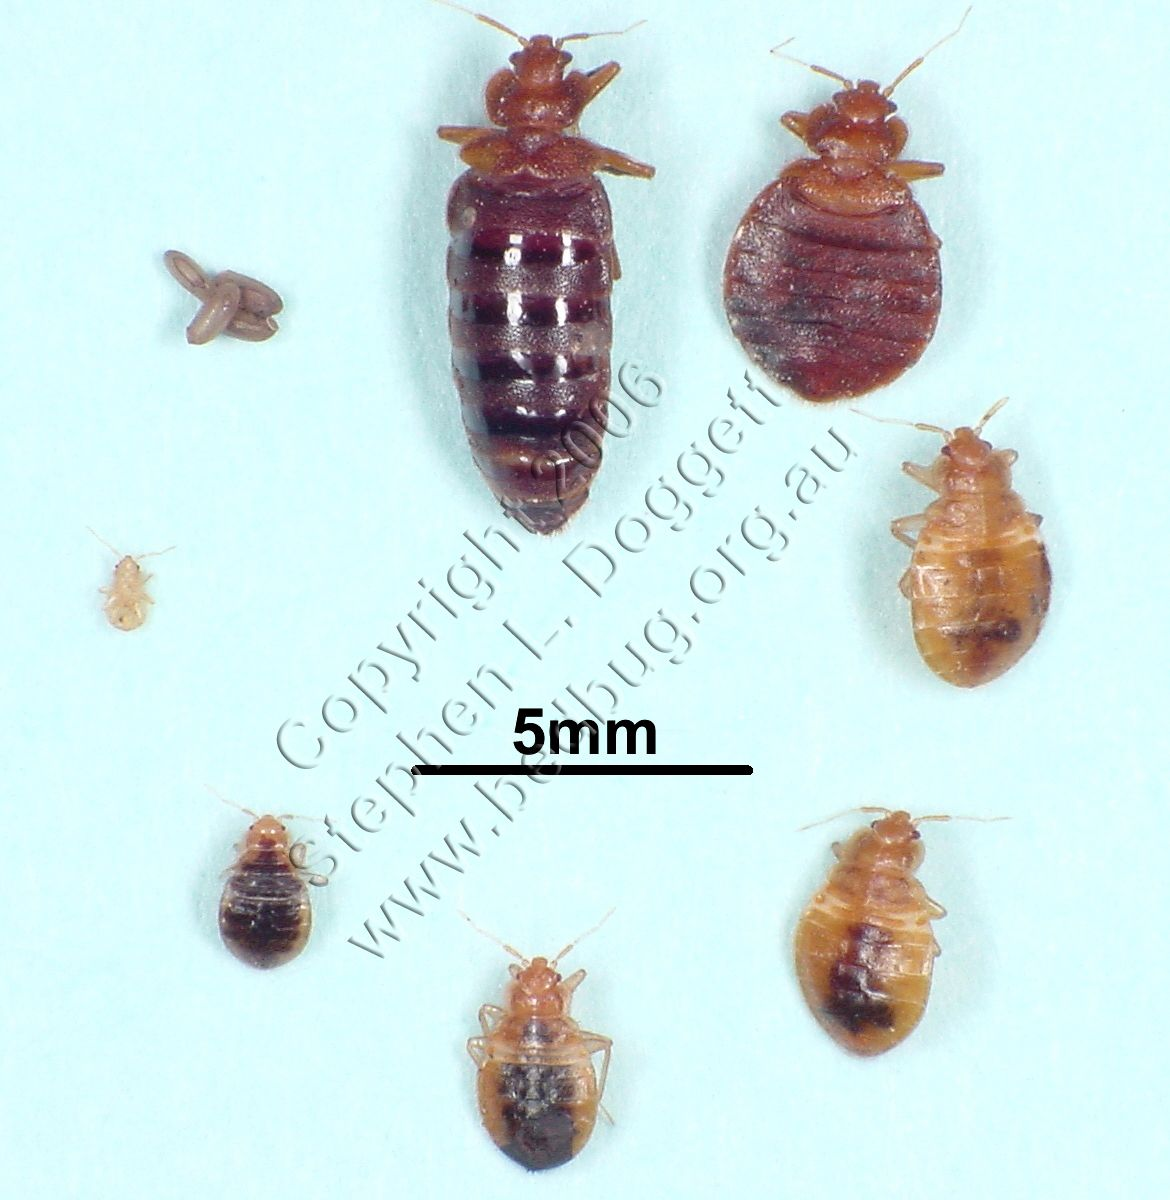 Stephen L Doggett S Bed Bug Life Cycle Photo Bed Bugs